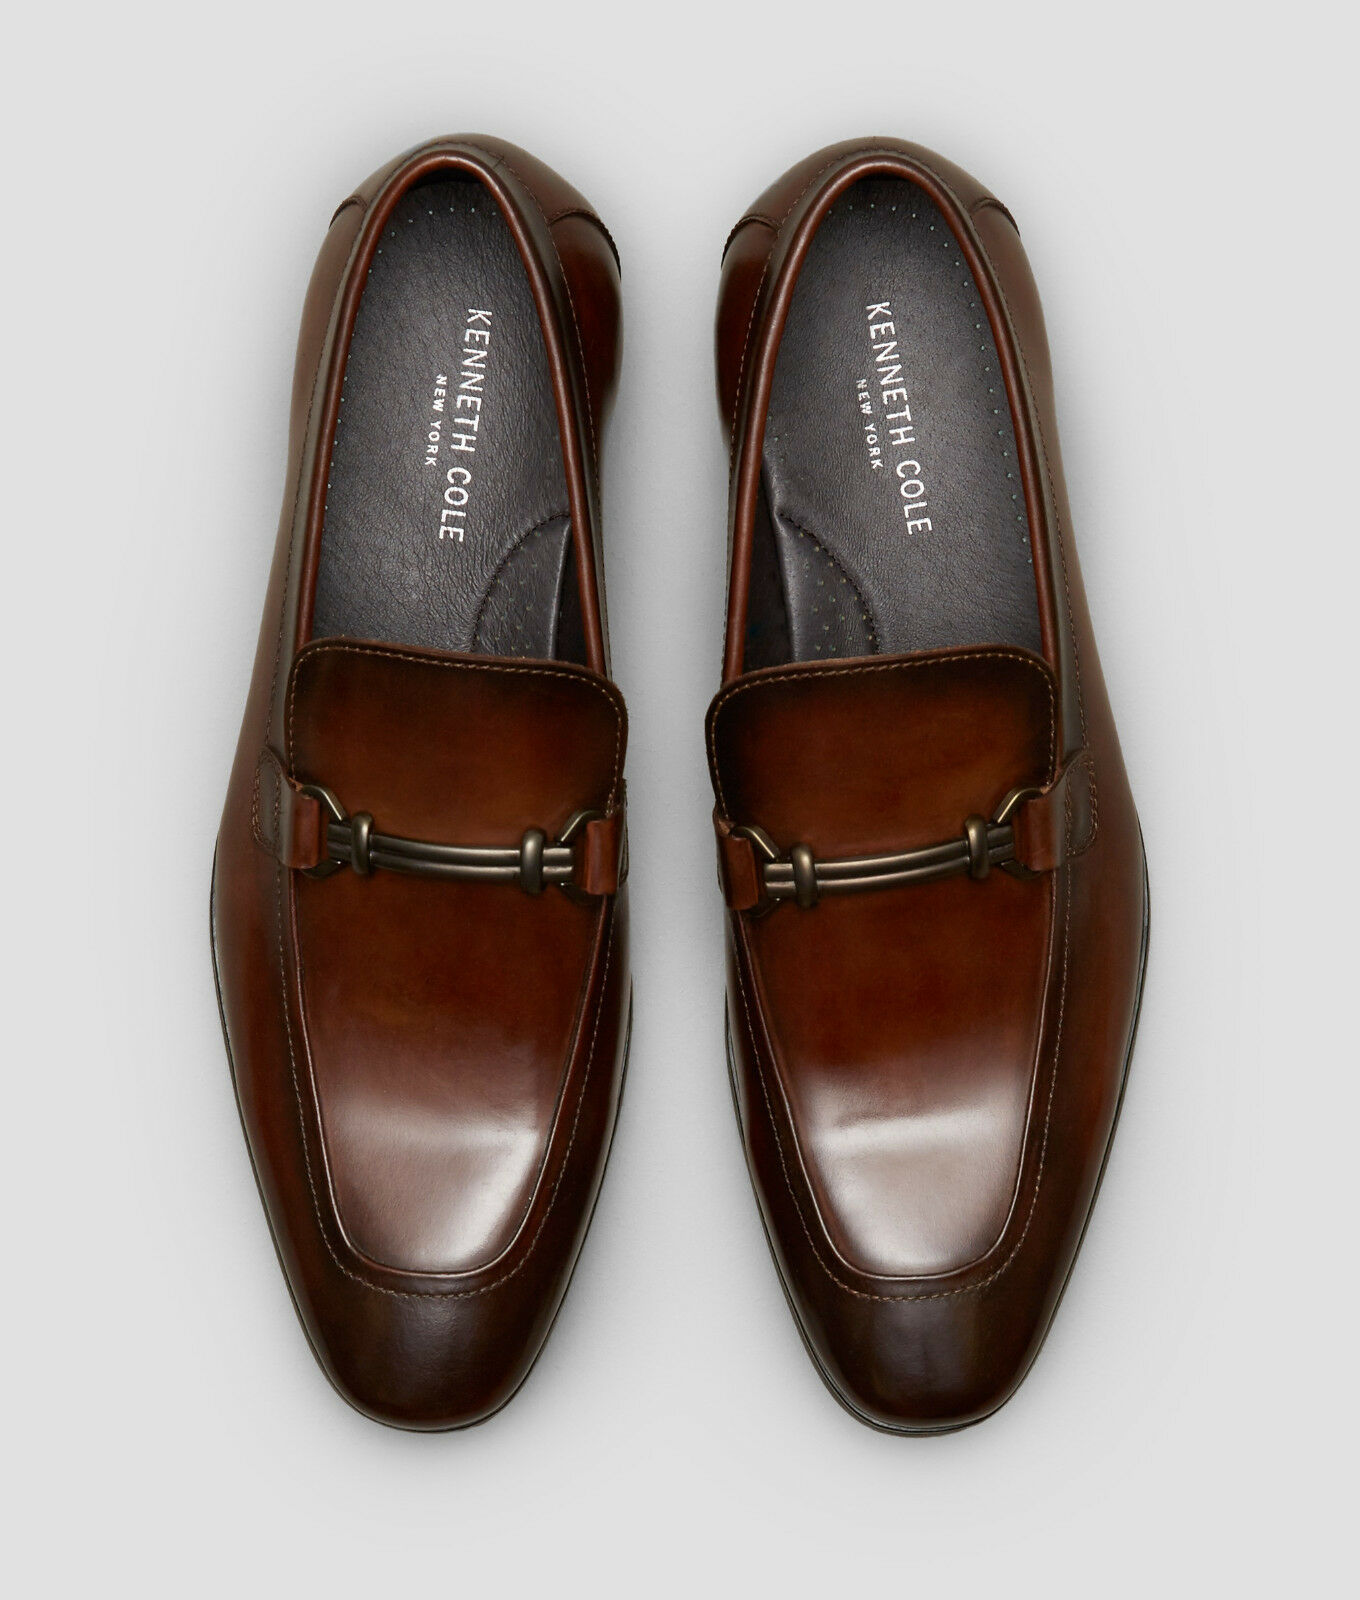 NIB Kenneth Cole New York Men's Spare Time Slip On Leather Loafers in Cognac